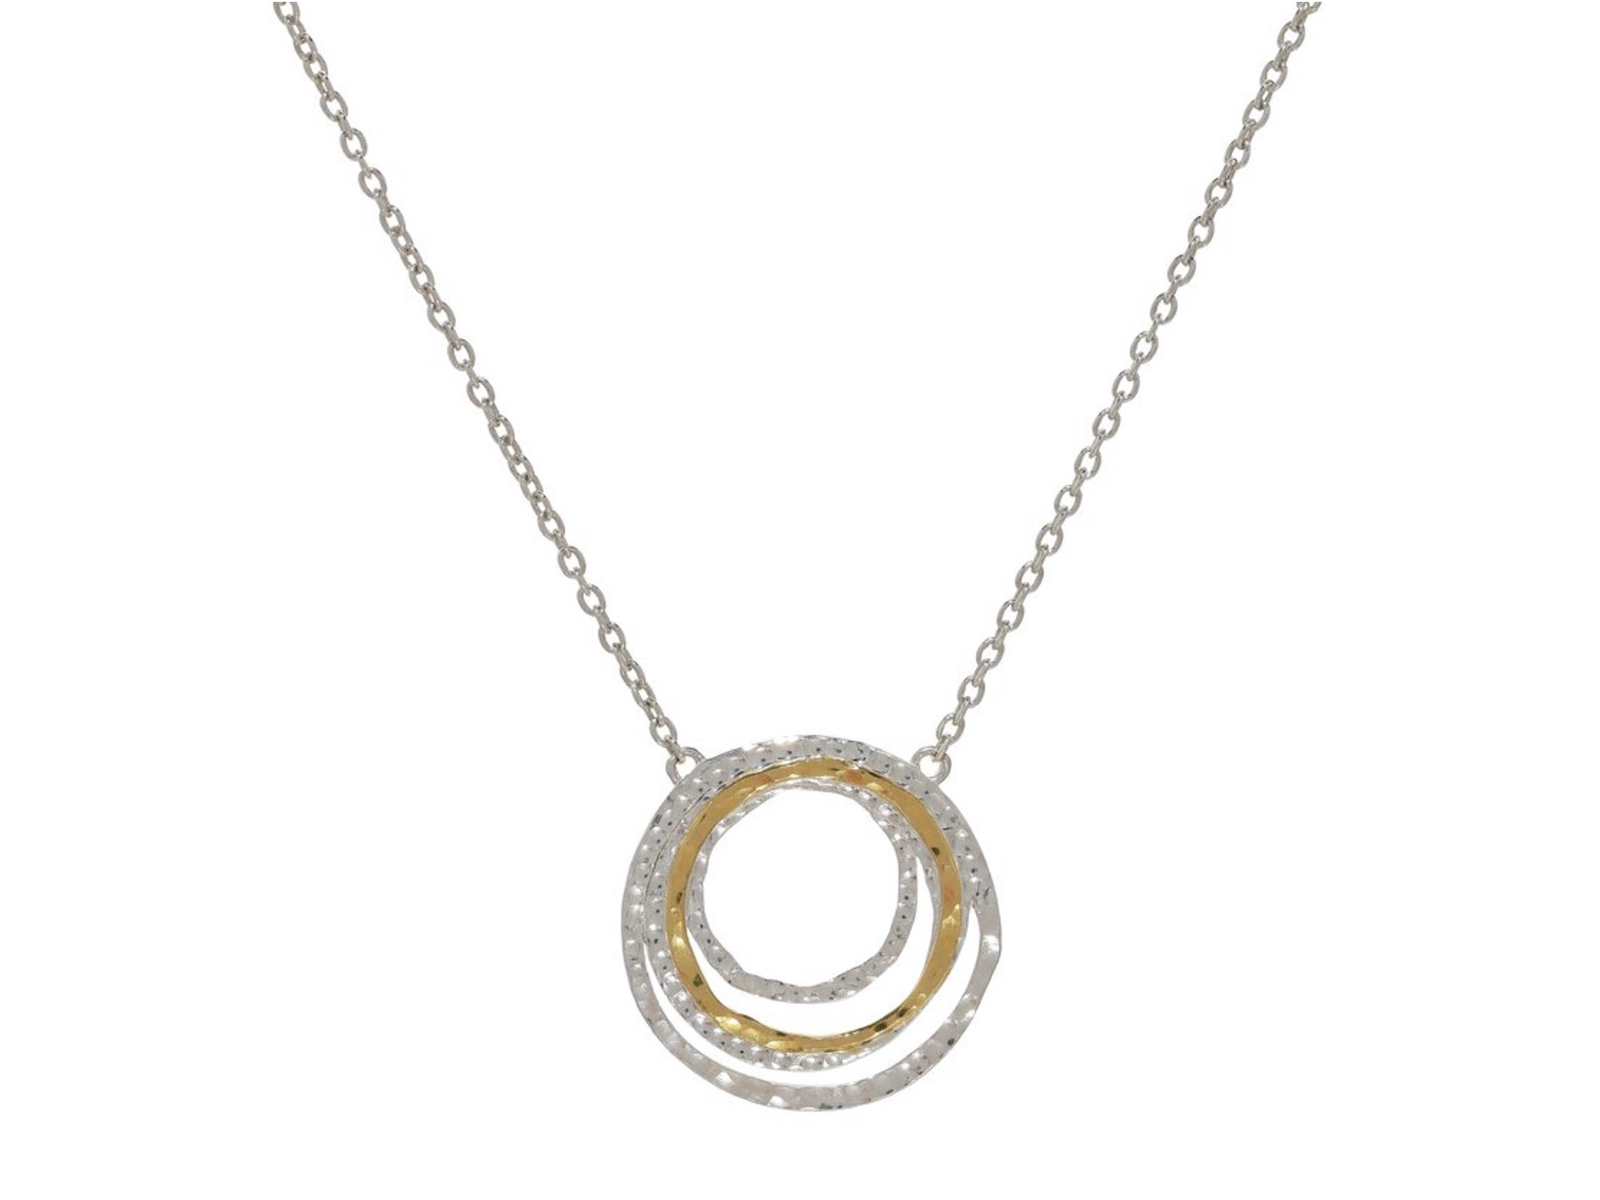 Graduated Rings Necklace